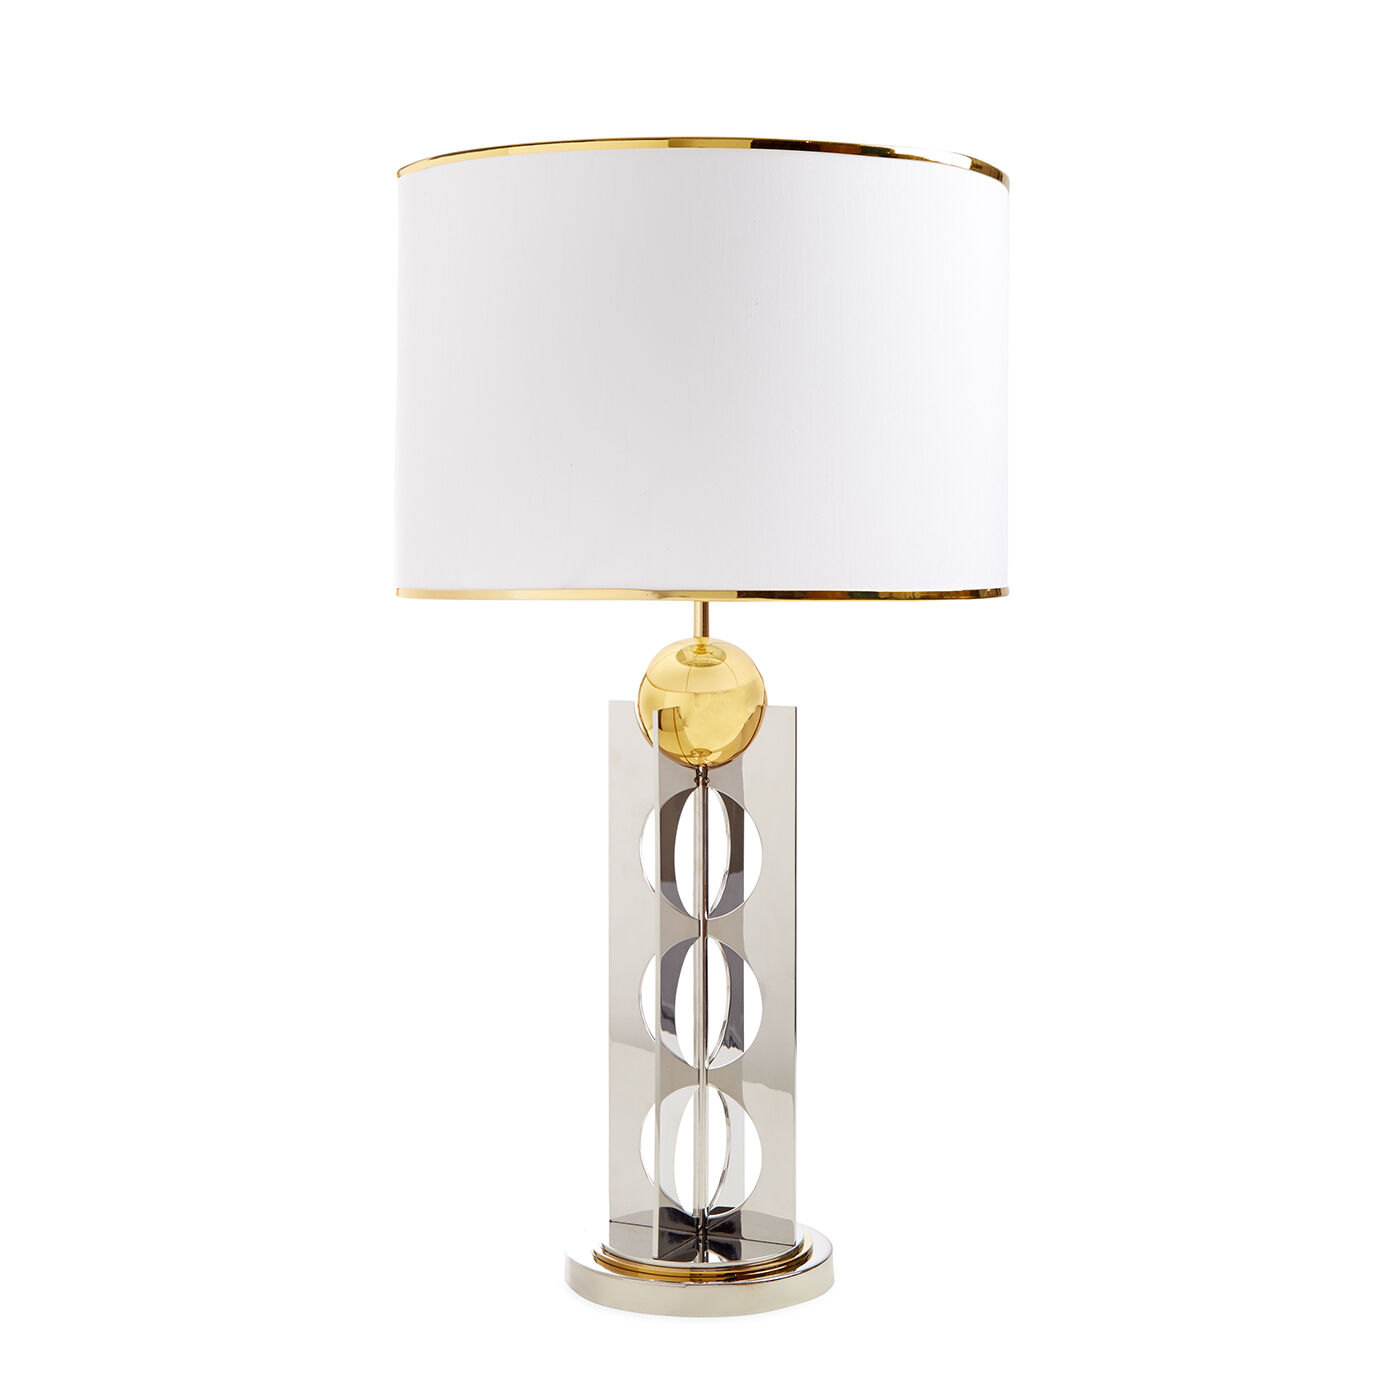 Table L&s - Berlin Table L&  sc 1 st  Jonathan Adler & Berlin Table Lamp | Modern Table Lamps | Jonathan Adler azcodes.com